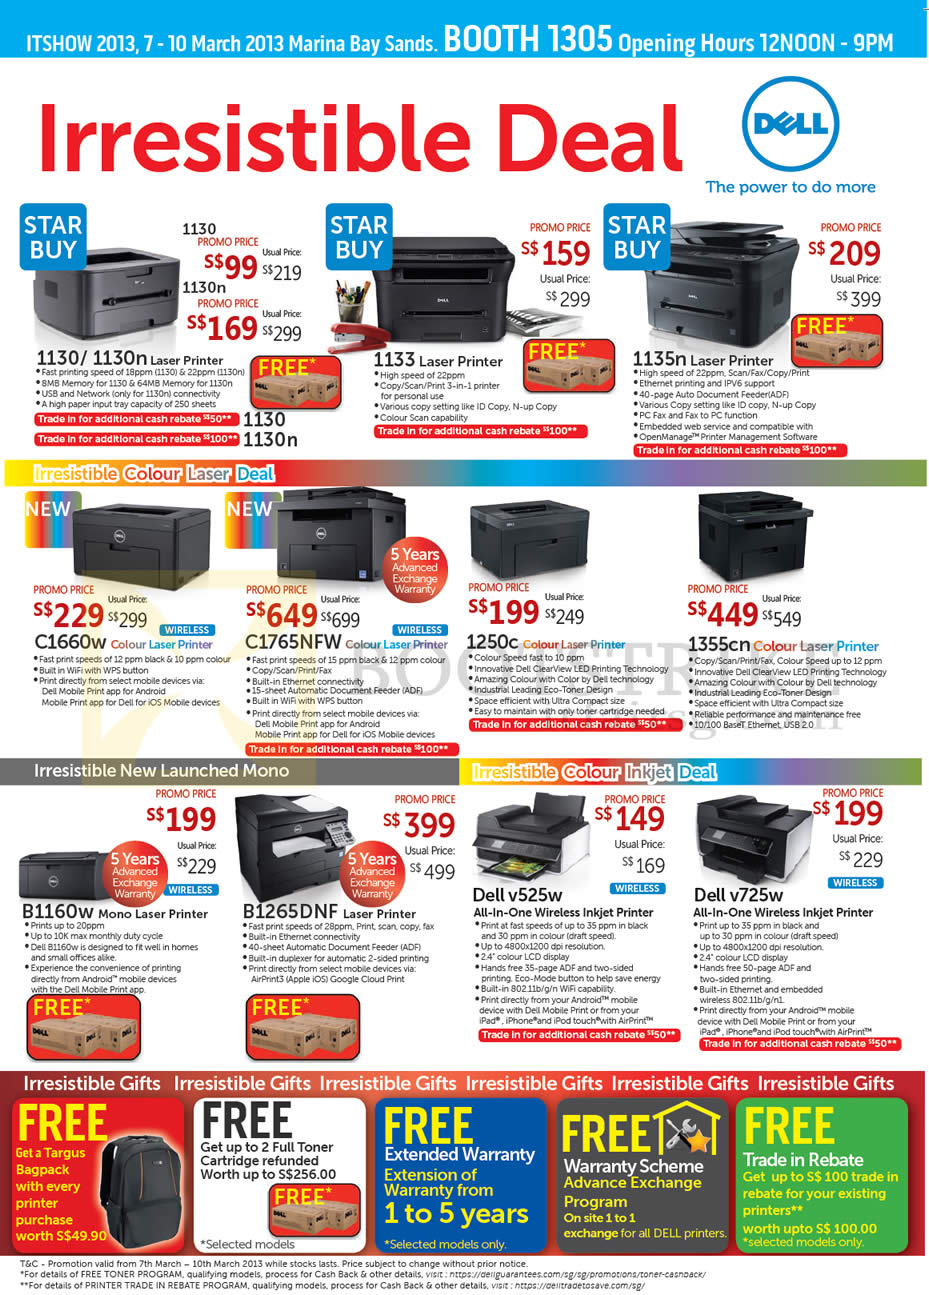 IT SHOW 2013 price list image brochure of Dell Printers Laser, Inkjet 1130, 1130n, 1133, 1135n, 1250c, 1355cn, C1660w, C1765NFW, B1160w, B1265DNF, V525w, V725w